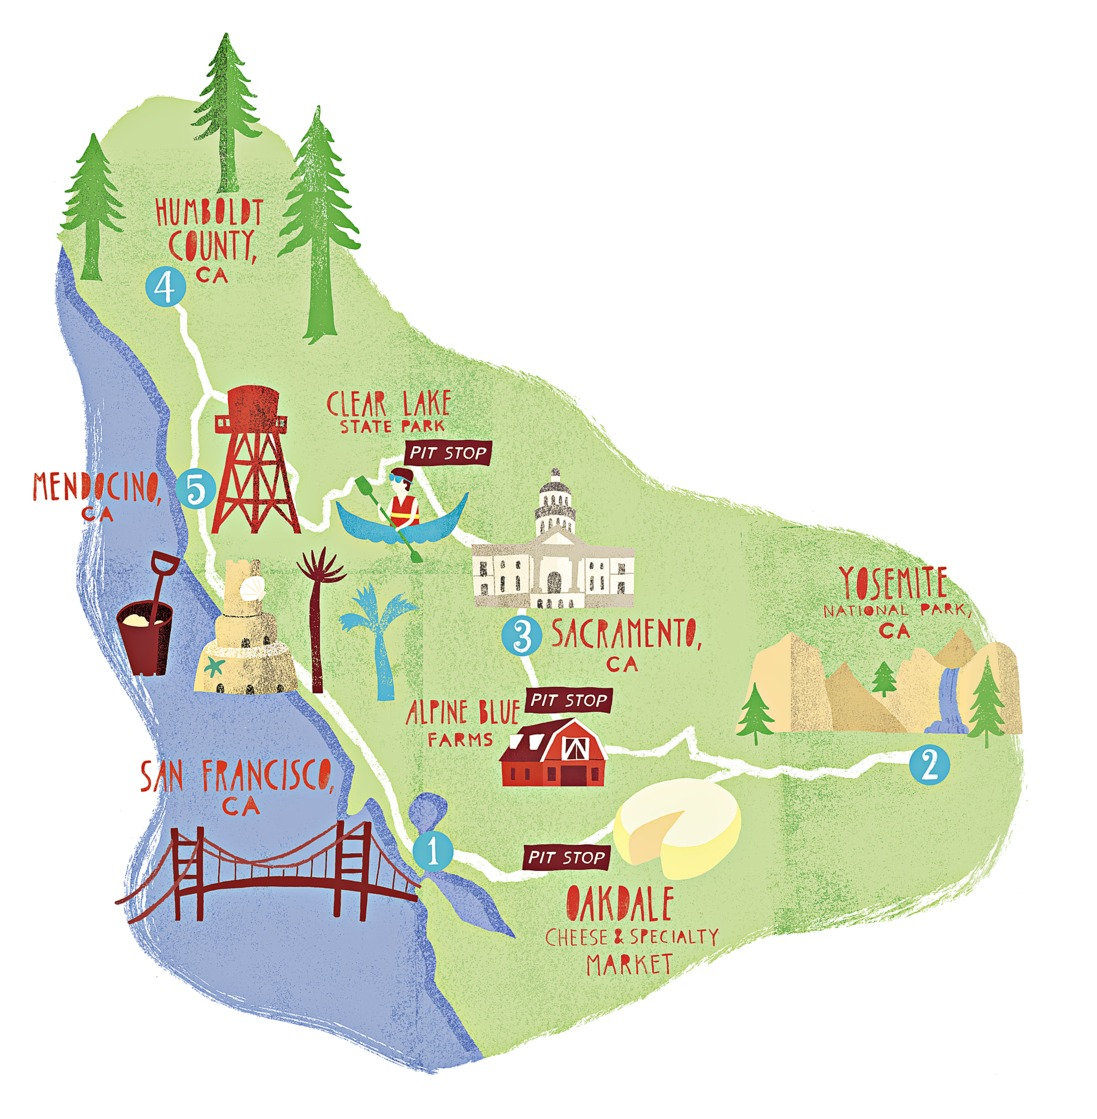 8 All-American Drives With Google Maps | Parents on sacramento on us map, san francisco google, sacramento california map, sacramento district map, sacramento city map, sacramento county map, california google, sacramento map united states,